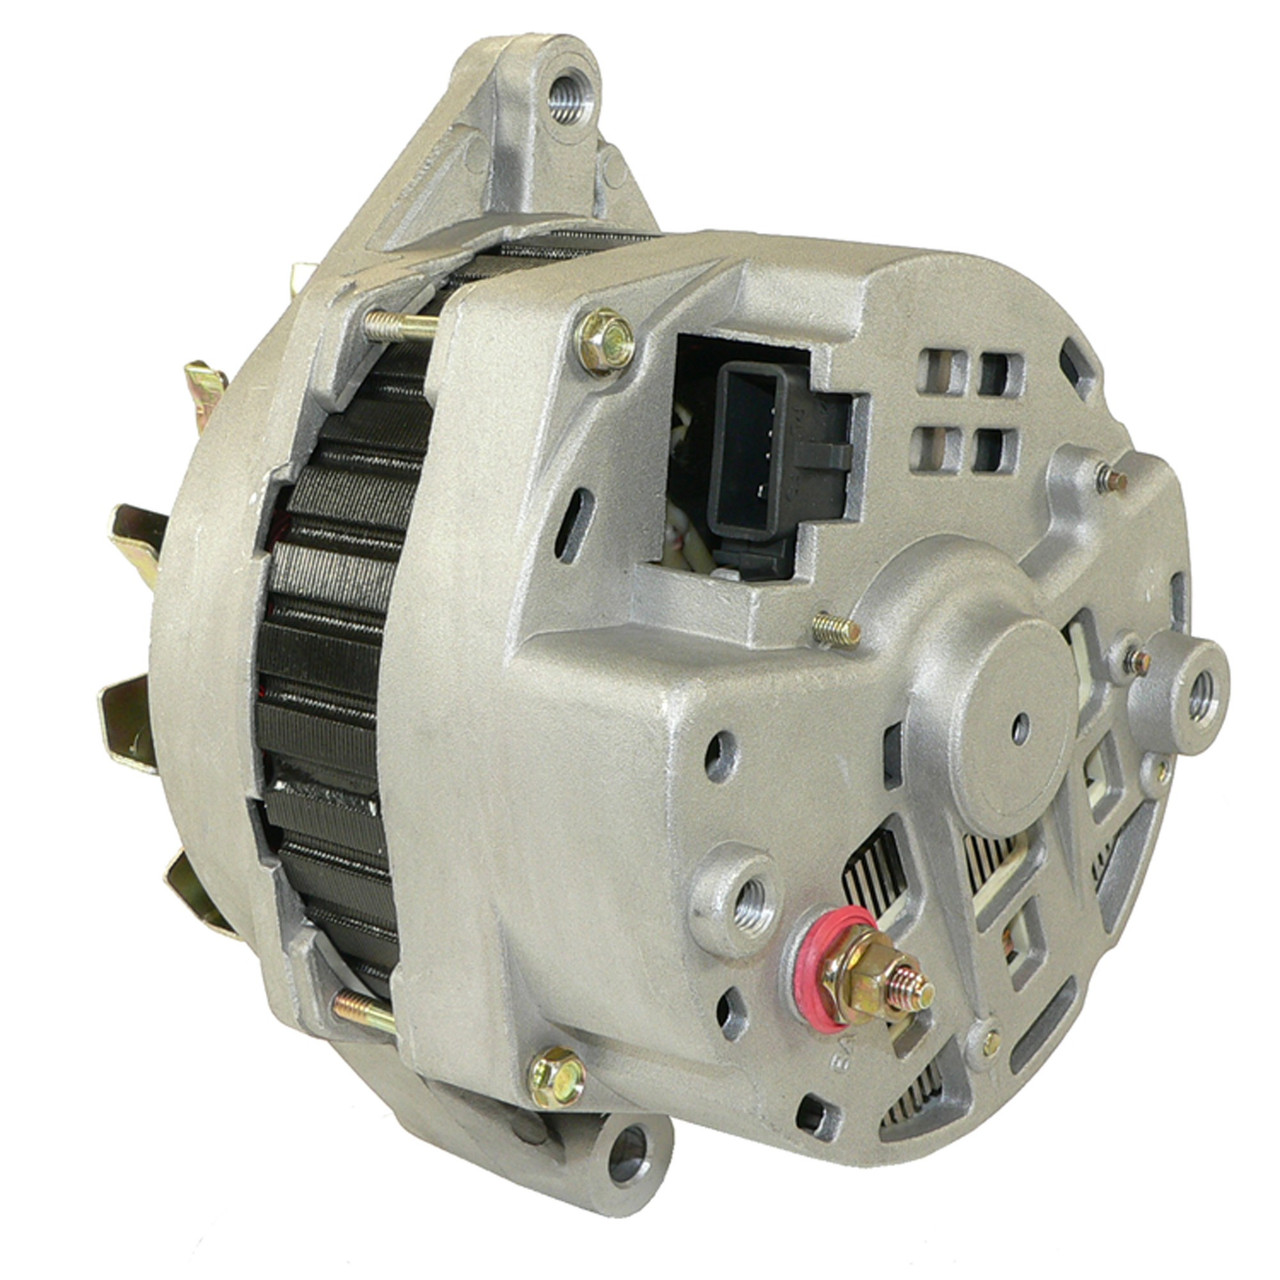 ALTERNATOR HIGH OUTPUT 250 Amp 4 3L 5 7 CAPRICE 88 HUMMER H1 92 93 94